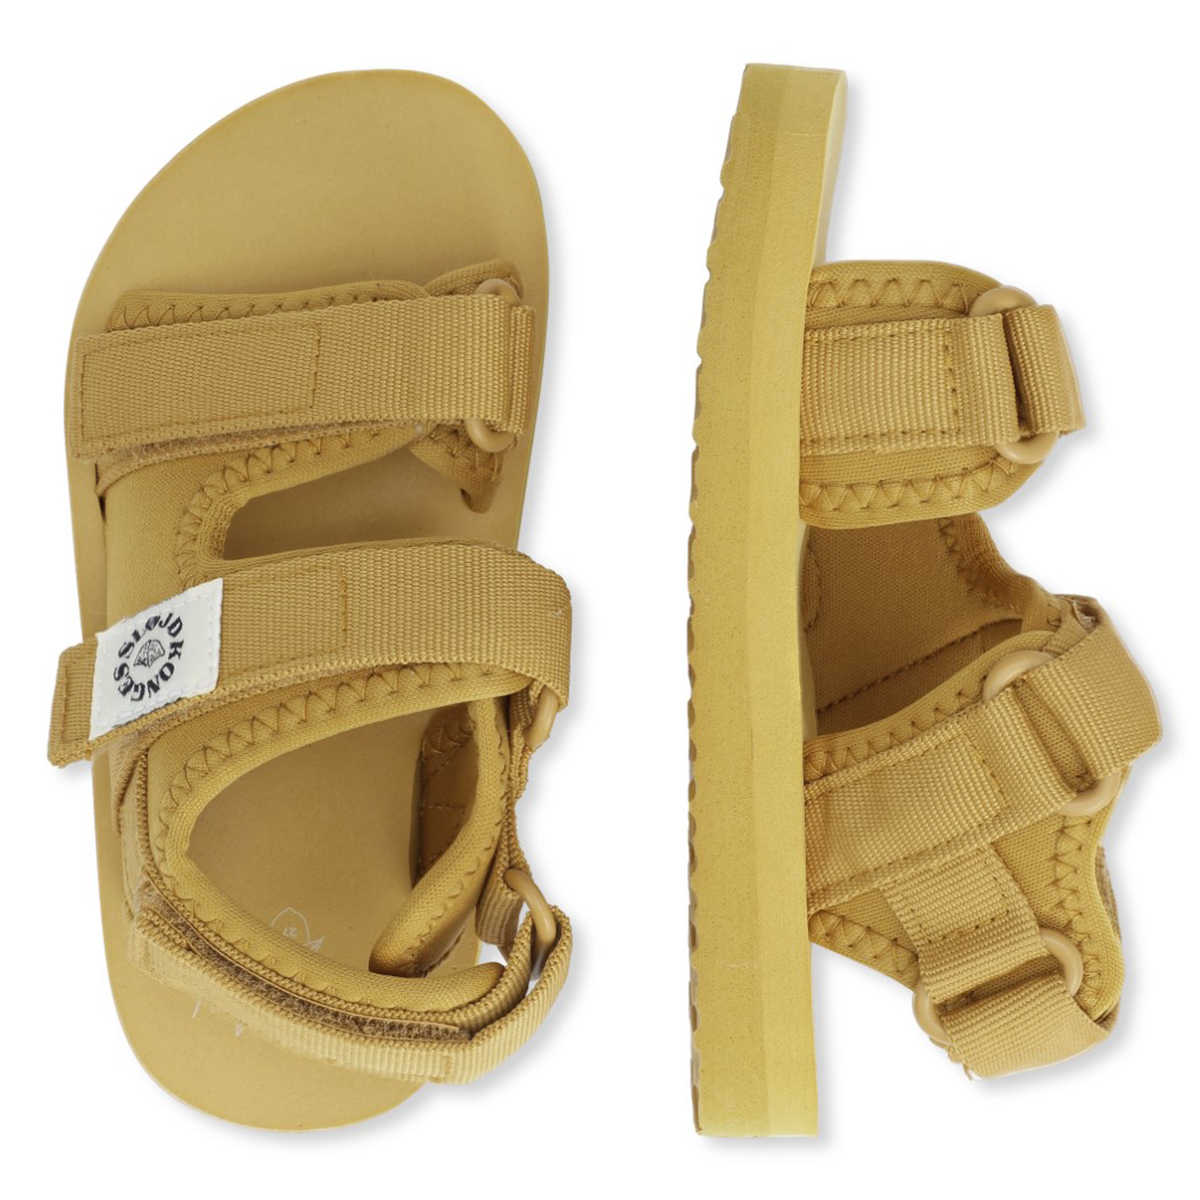 Chaussons & Chaussures Sandales Sun Mustard Gold - 27 Sandales Sun Mustard Gold - 27